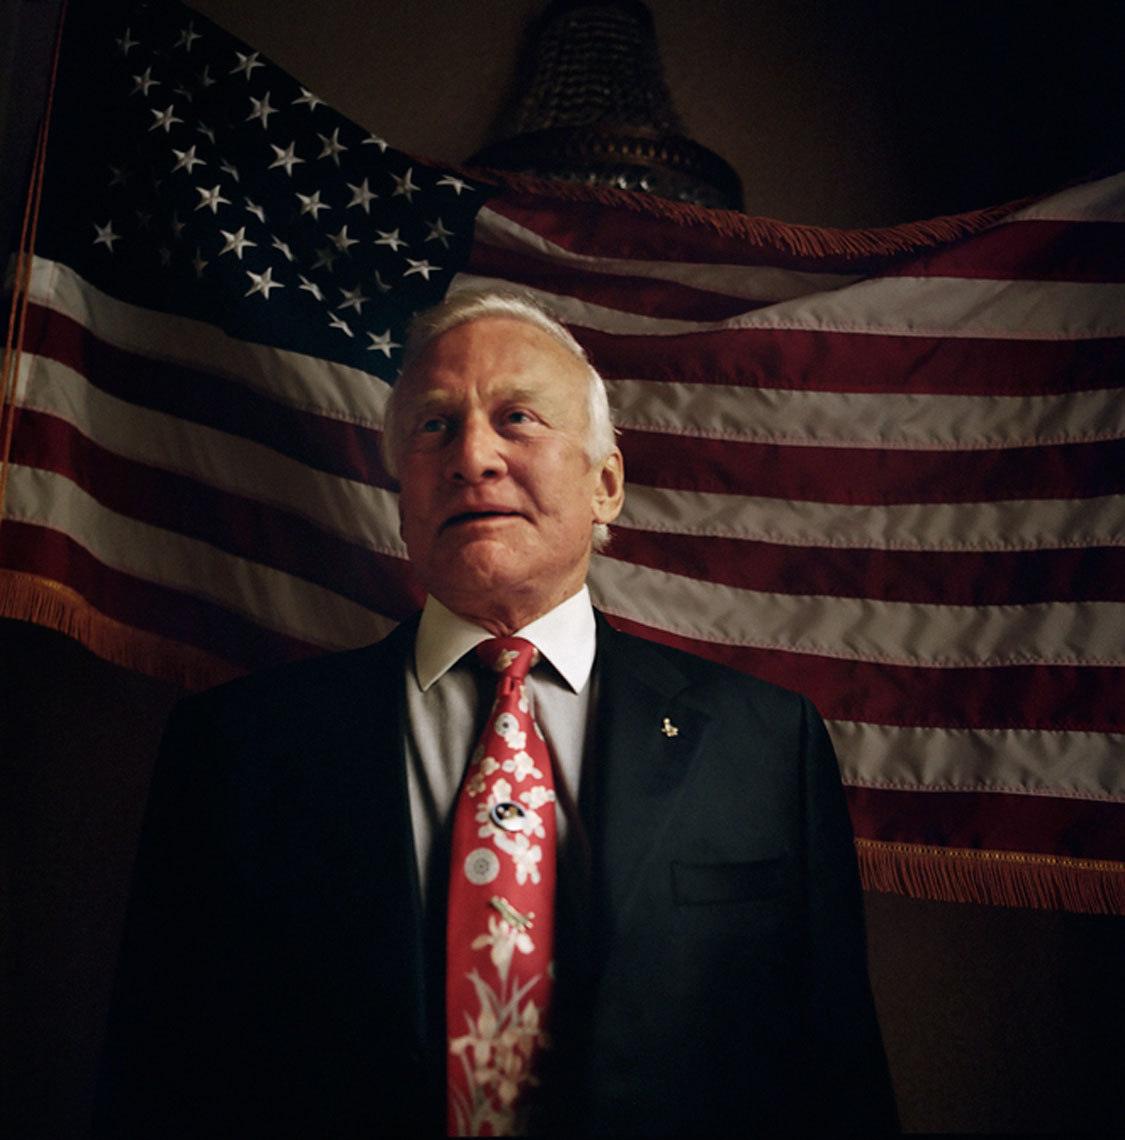 Buzz Aldrin by PETER LueDERS